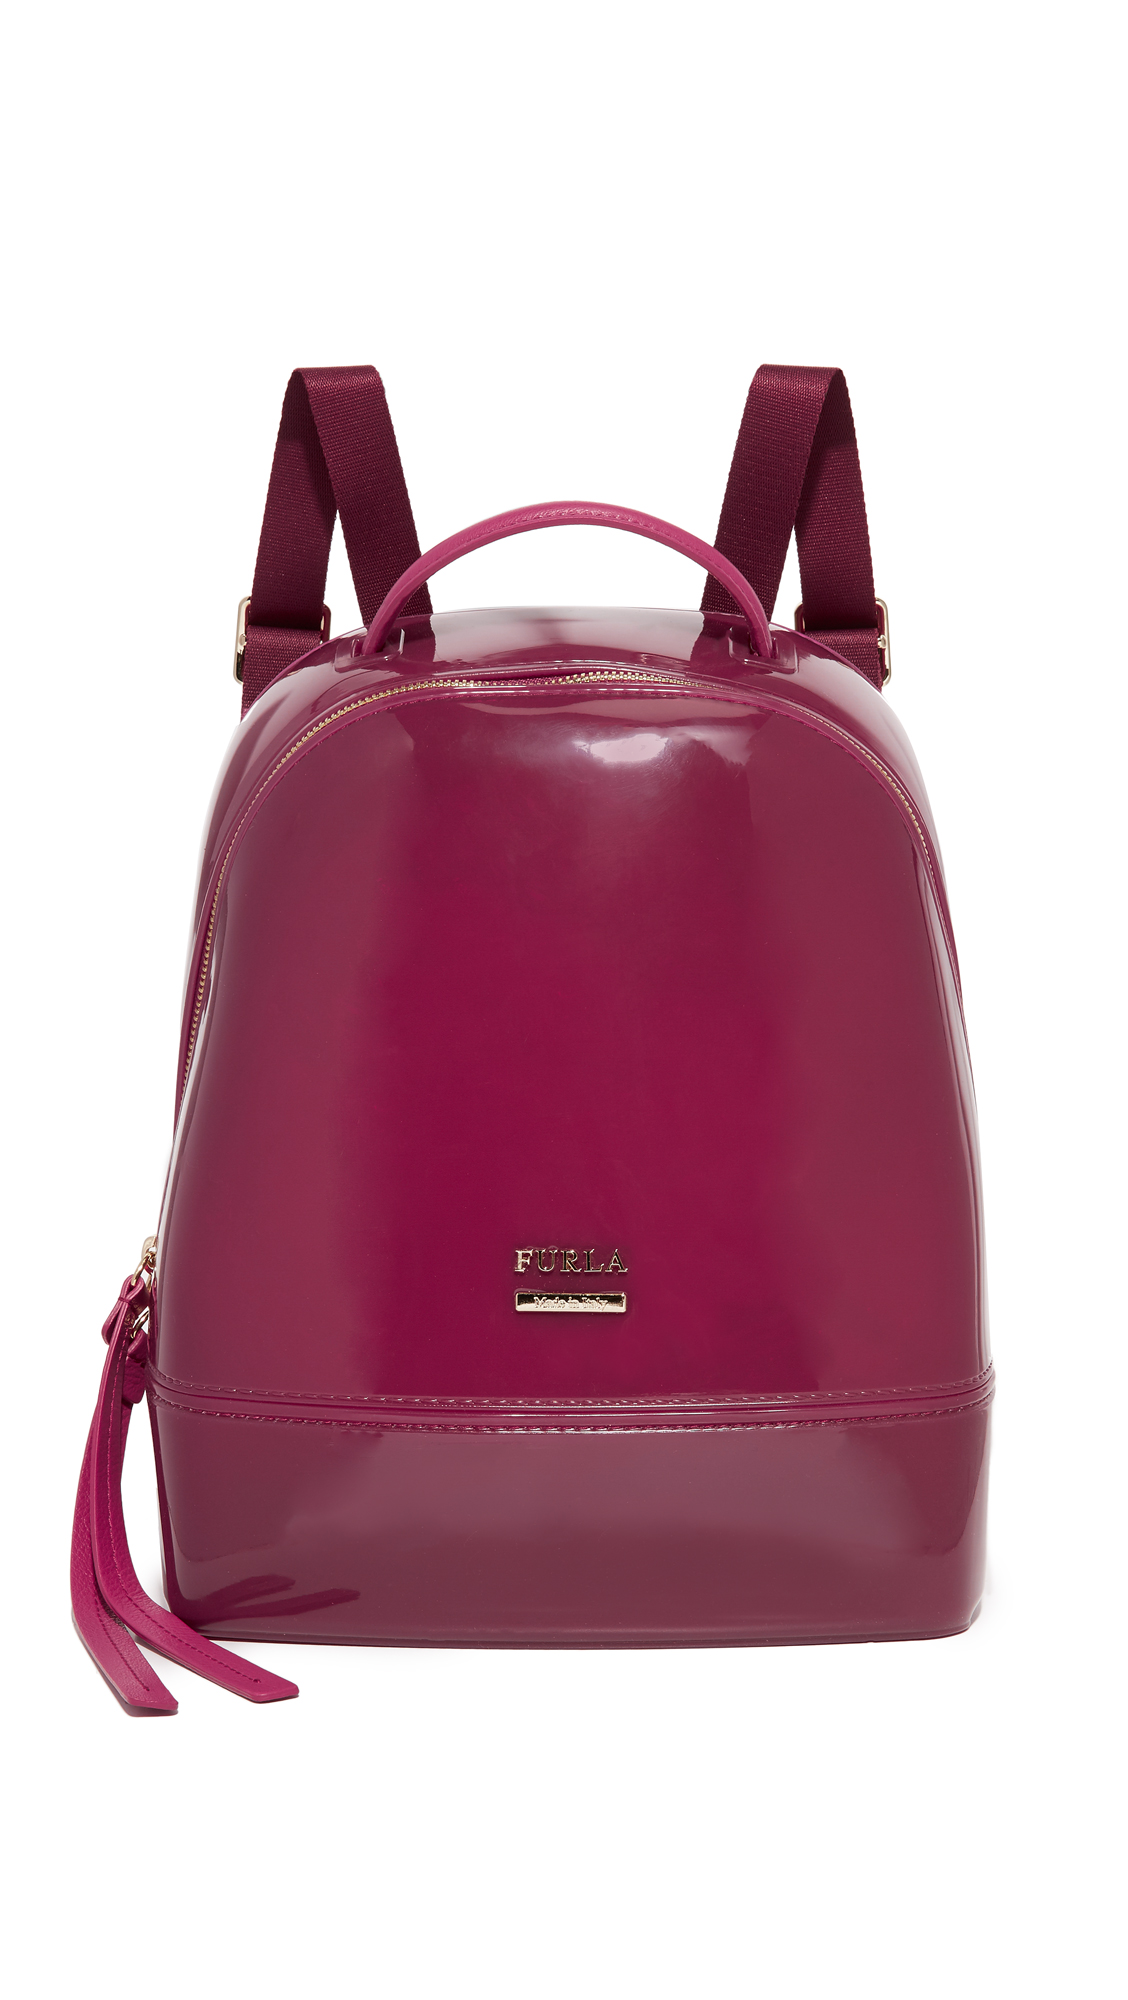 A petite Furla backpack rendered in the brand's signature glossy rubber and finished with leather trim. Polished logo studs and a 2 way top zip. The convertible webbed shoulder straps can be worn as a cross body